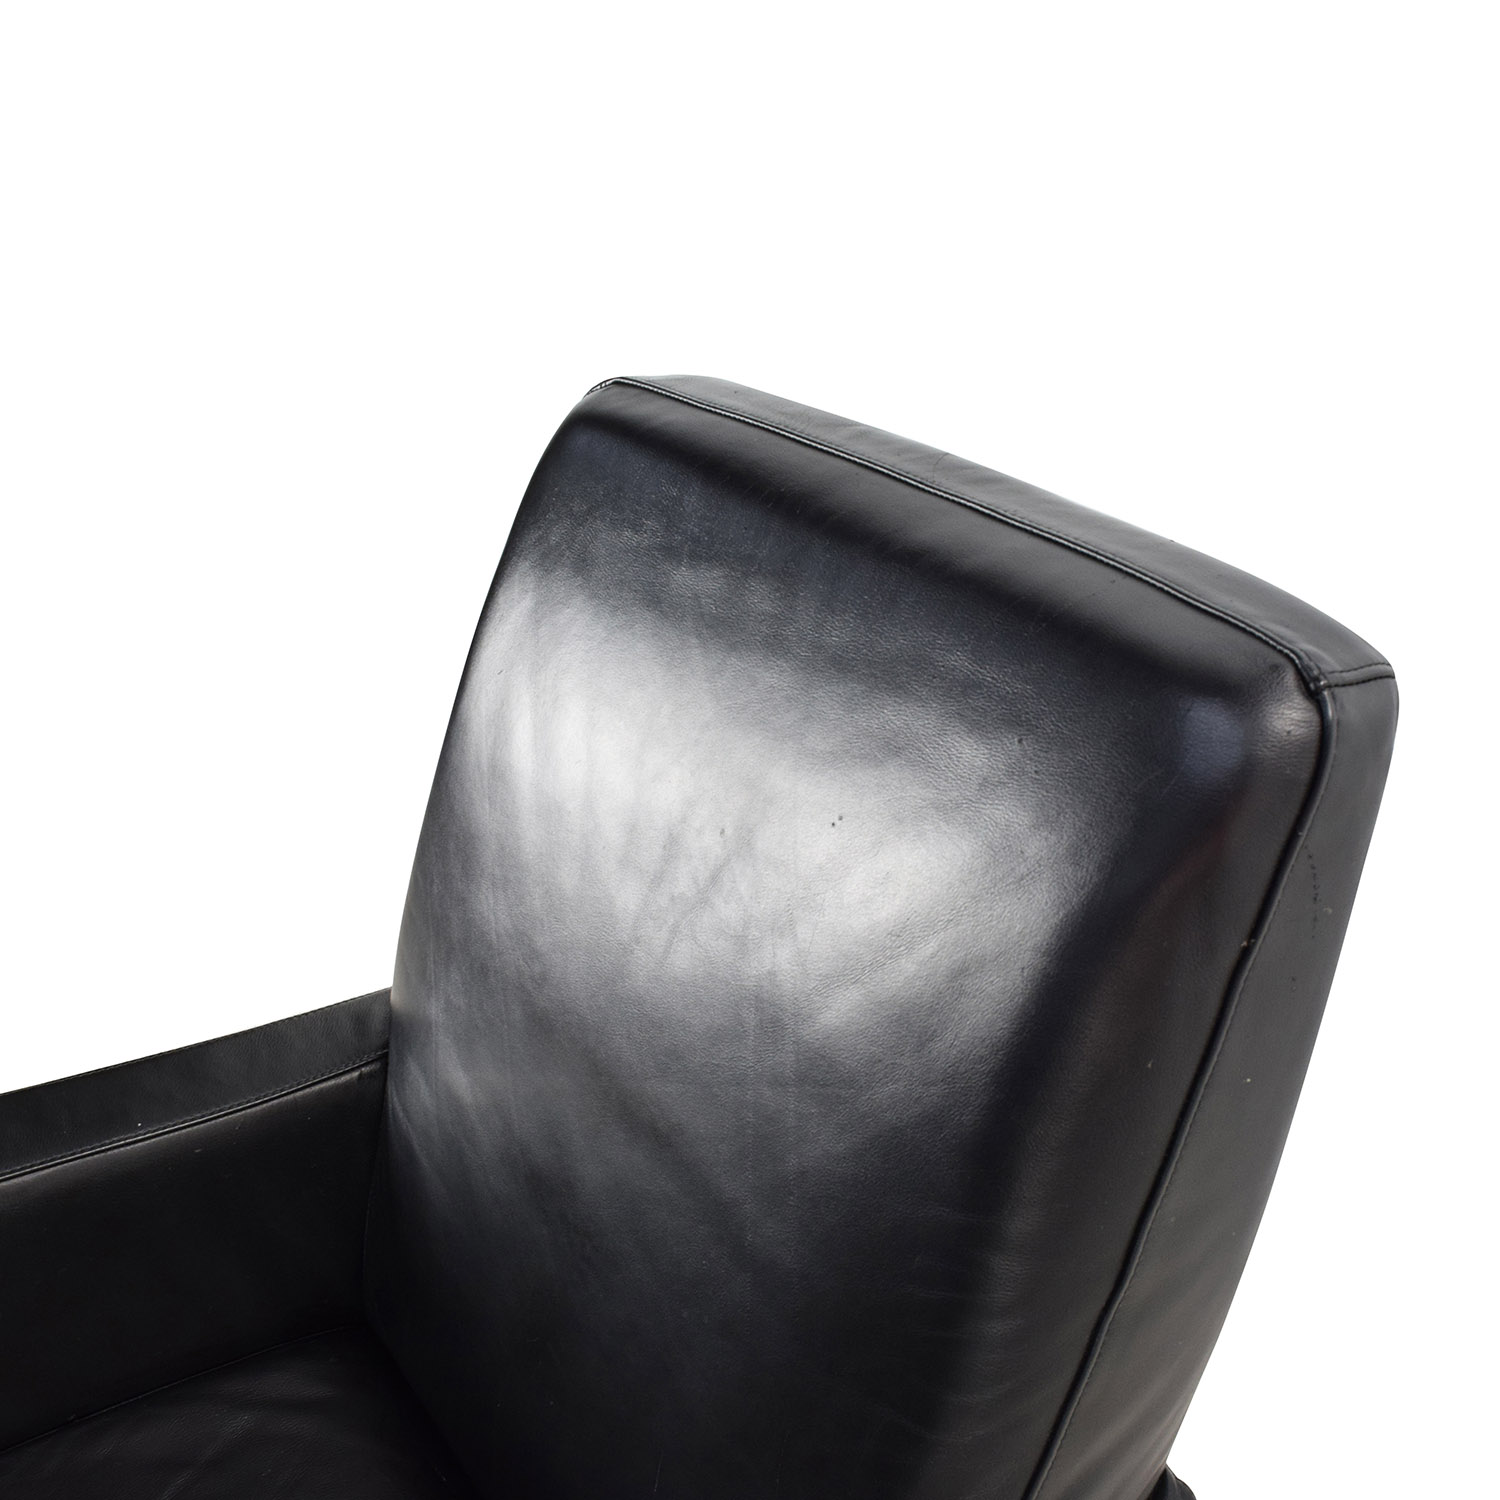 ... Shop Natuzzi Natuzzi Black Leather Swivel Chair With Ottoman Online ...